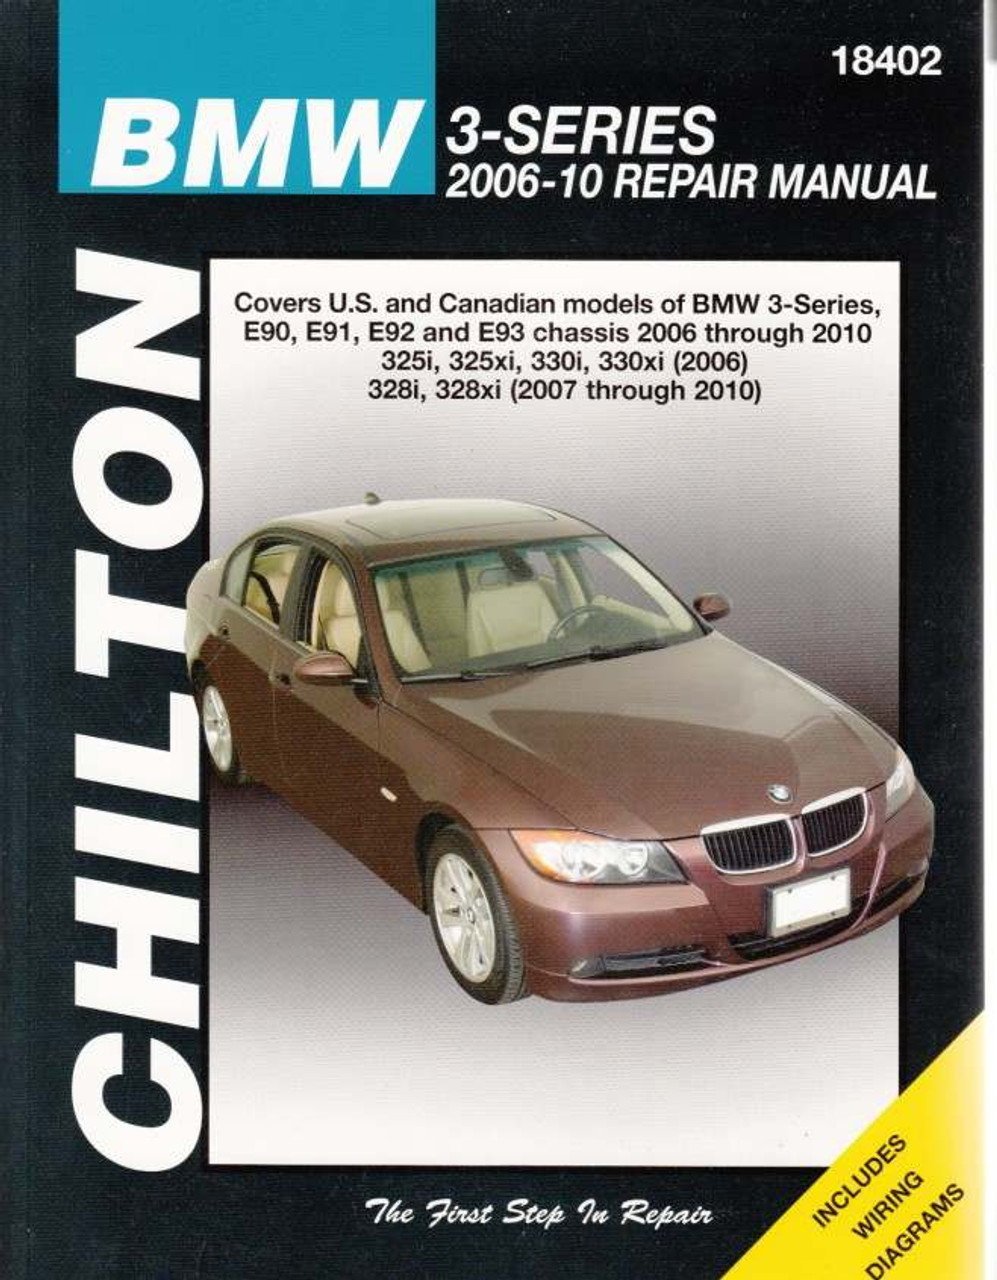 buy bmw 3 series e90 e91 e92 e93 2006 2010 workshop manual rh automotobookshop com au bmw e90 repair manual download bmw e60 repair manual